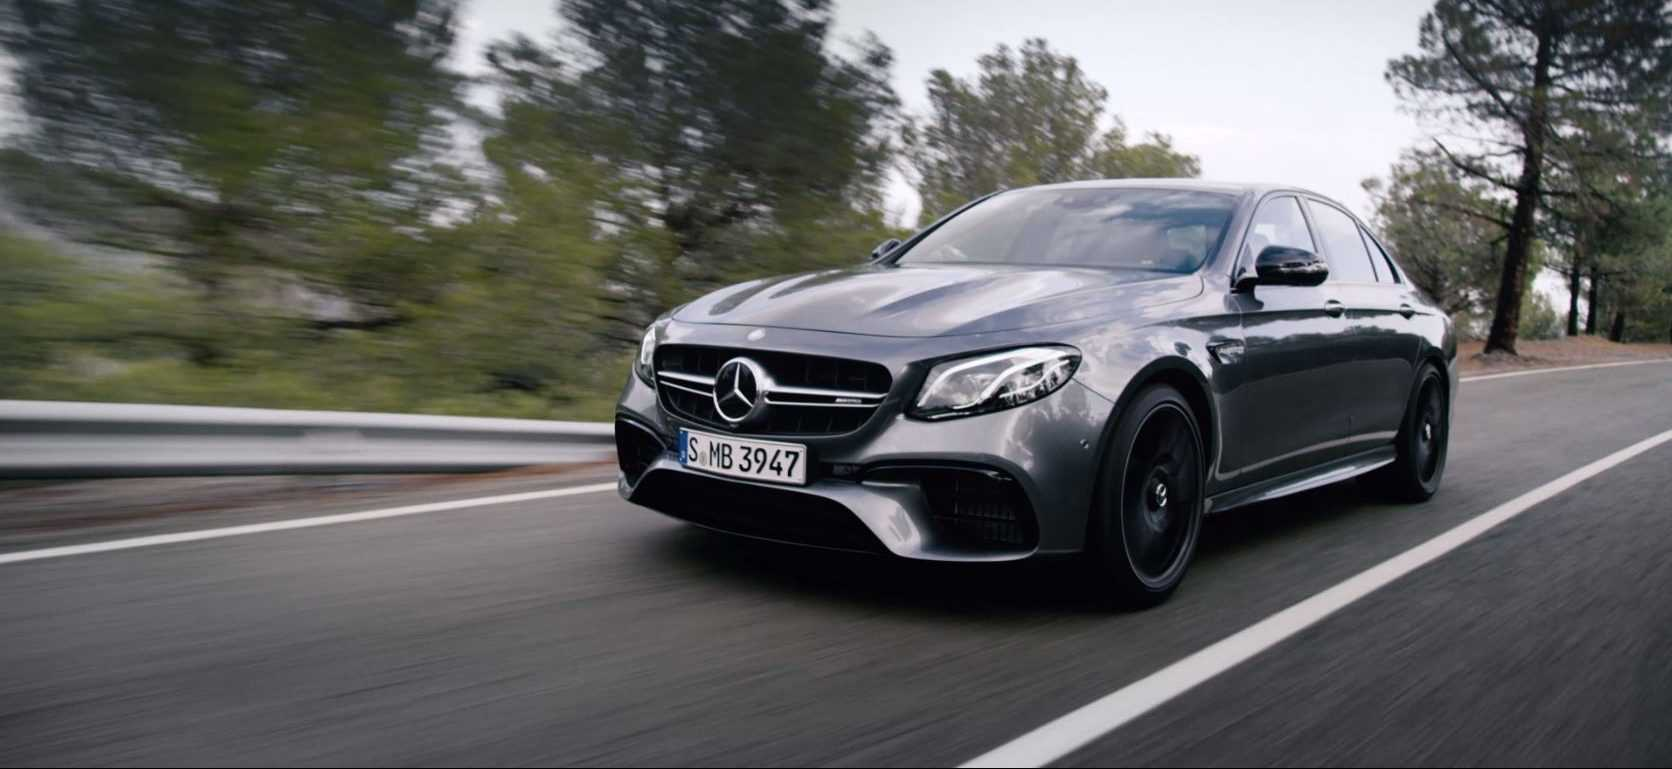 Mercedes-AMG E 63 S 4Matic 2017